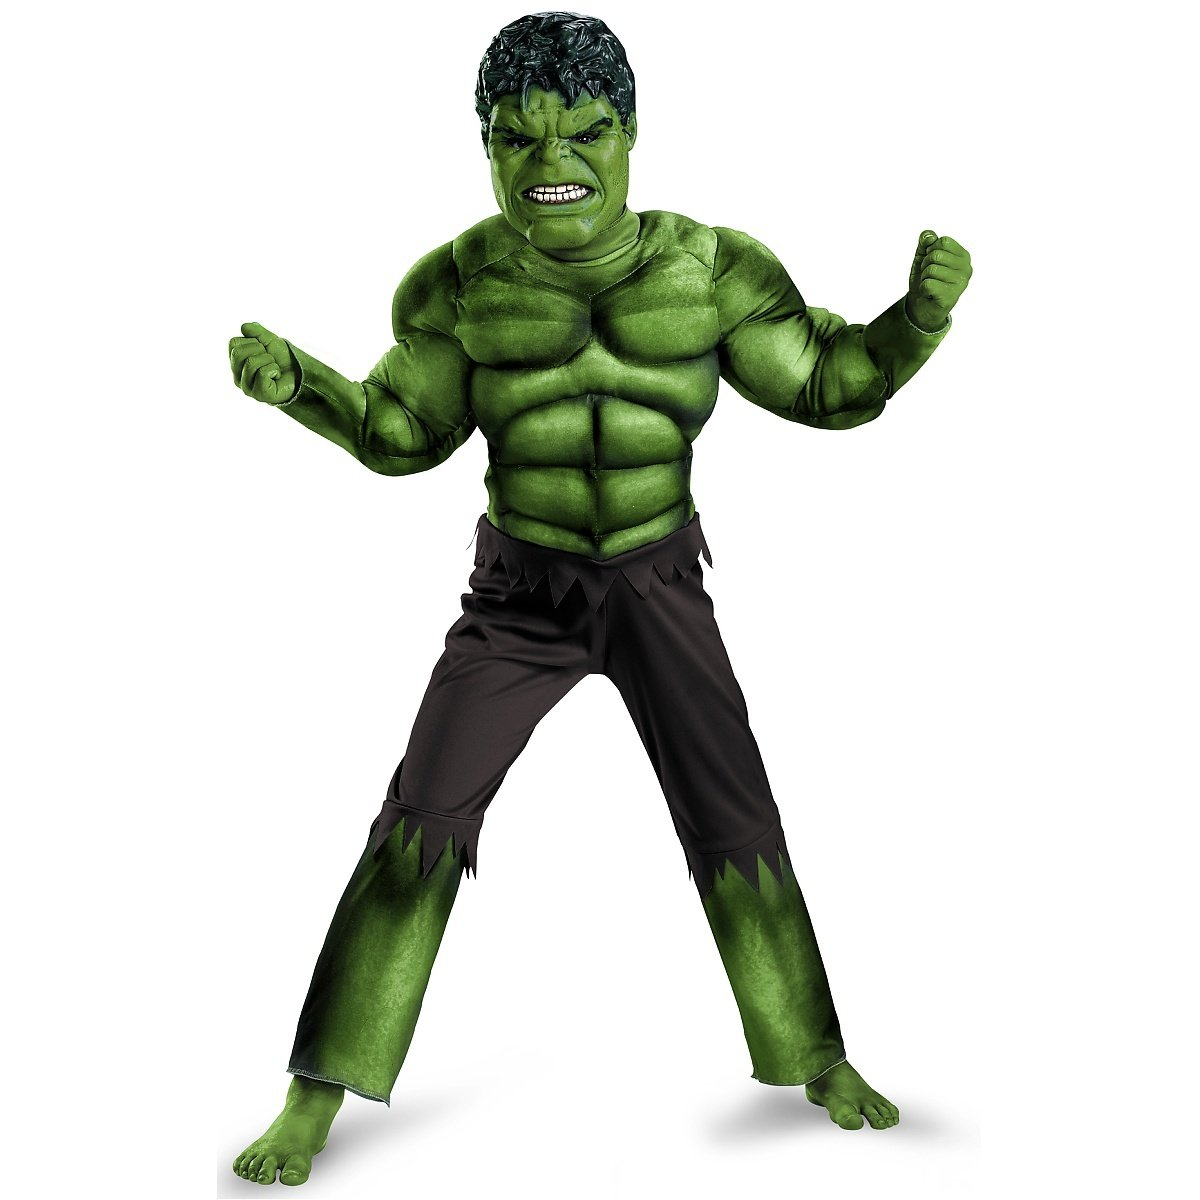 Disguise Limited Boys' Hulk Avengers Classic Muscle Costume Disguise Costumes - Toys Division